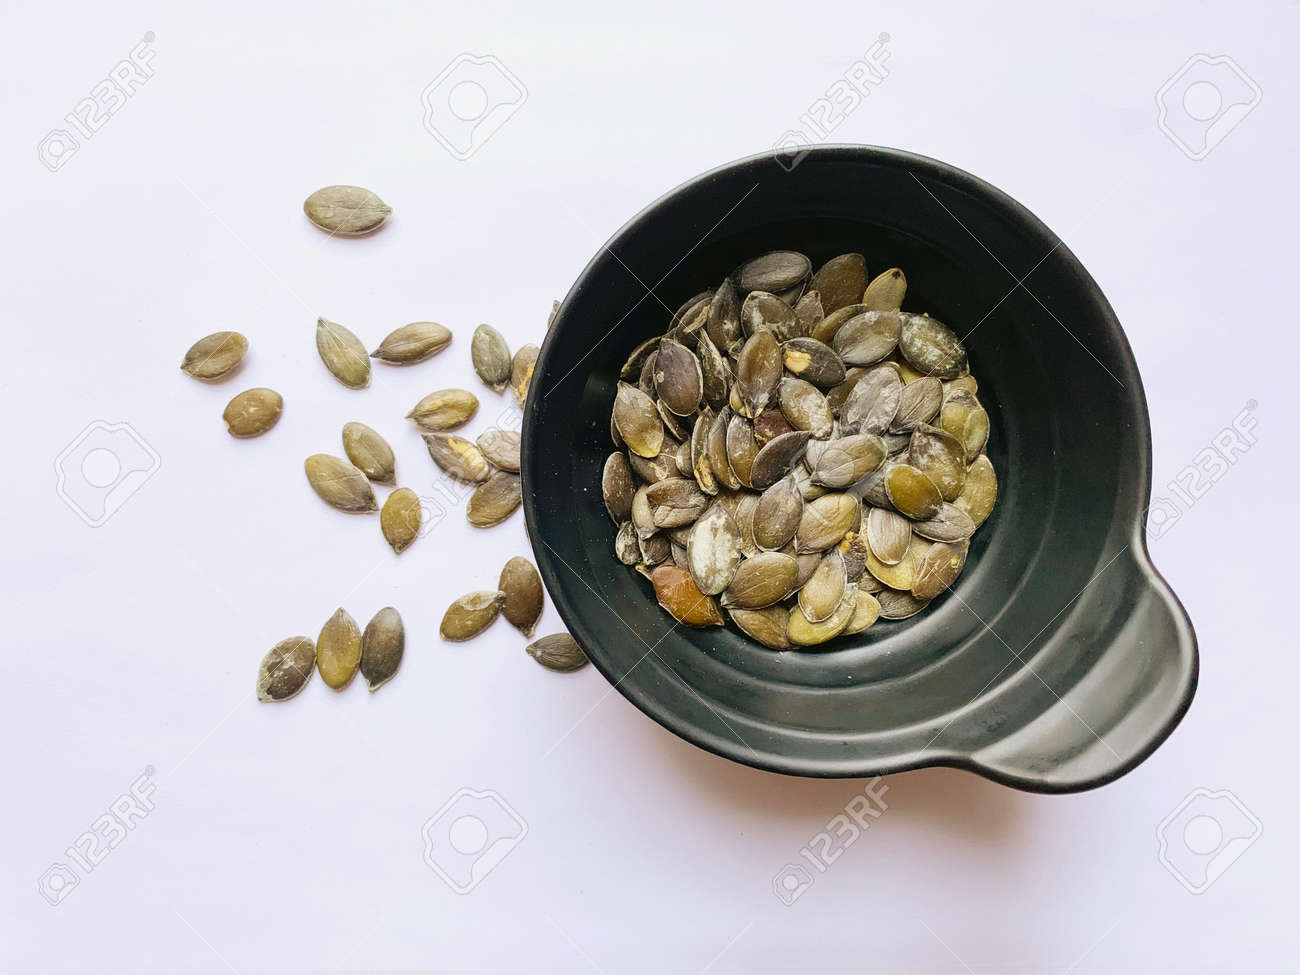 Styrian pumpkin seeds in a black cup and scattered on a white background. View from above. - 169603136